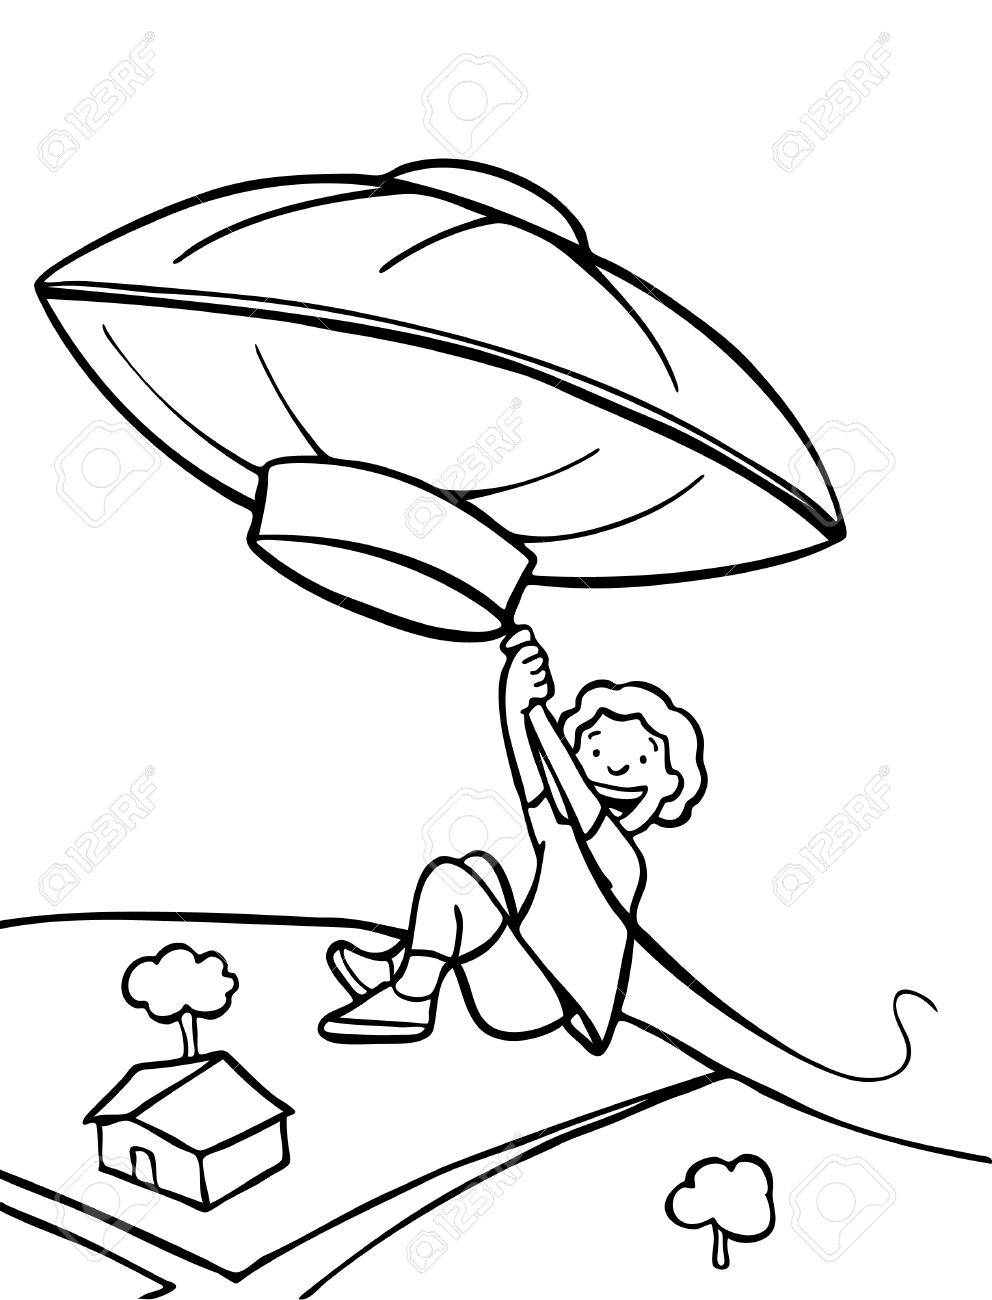 Kid flying away in a weather balloon. Stock Vector - 5783862